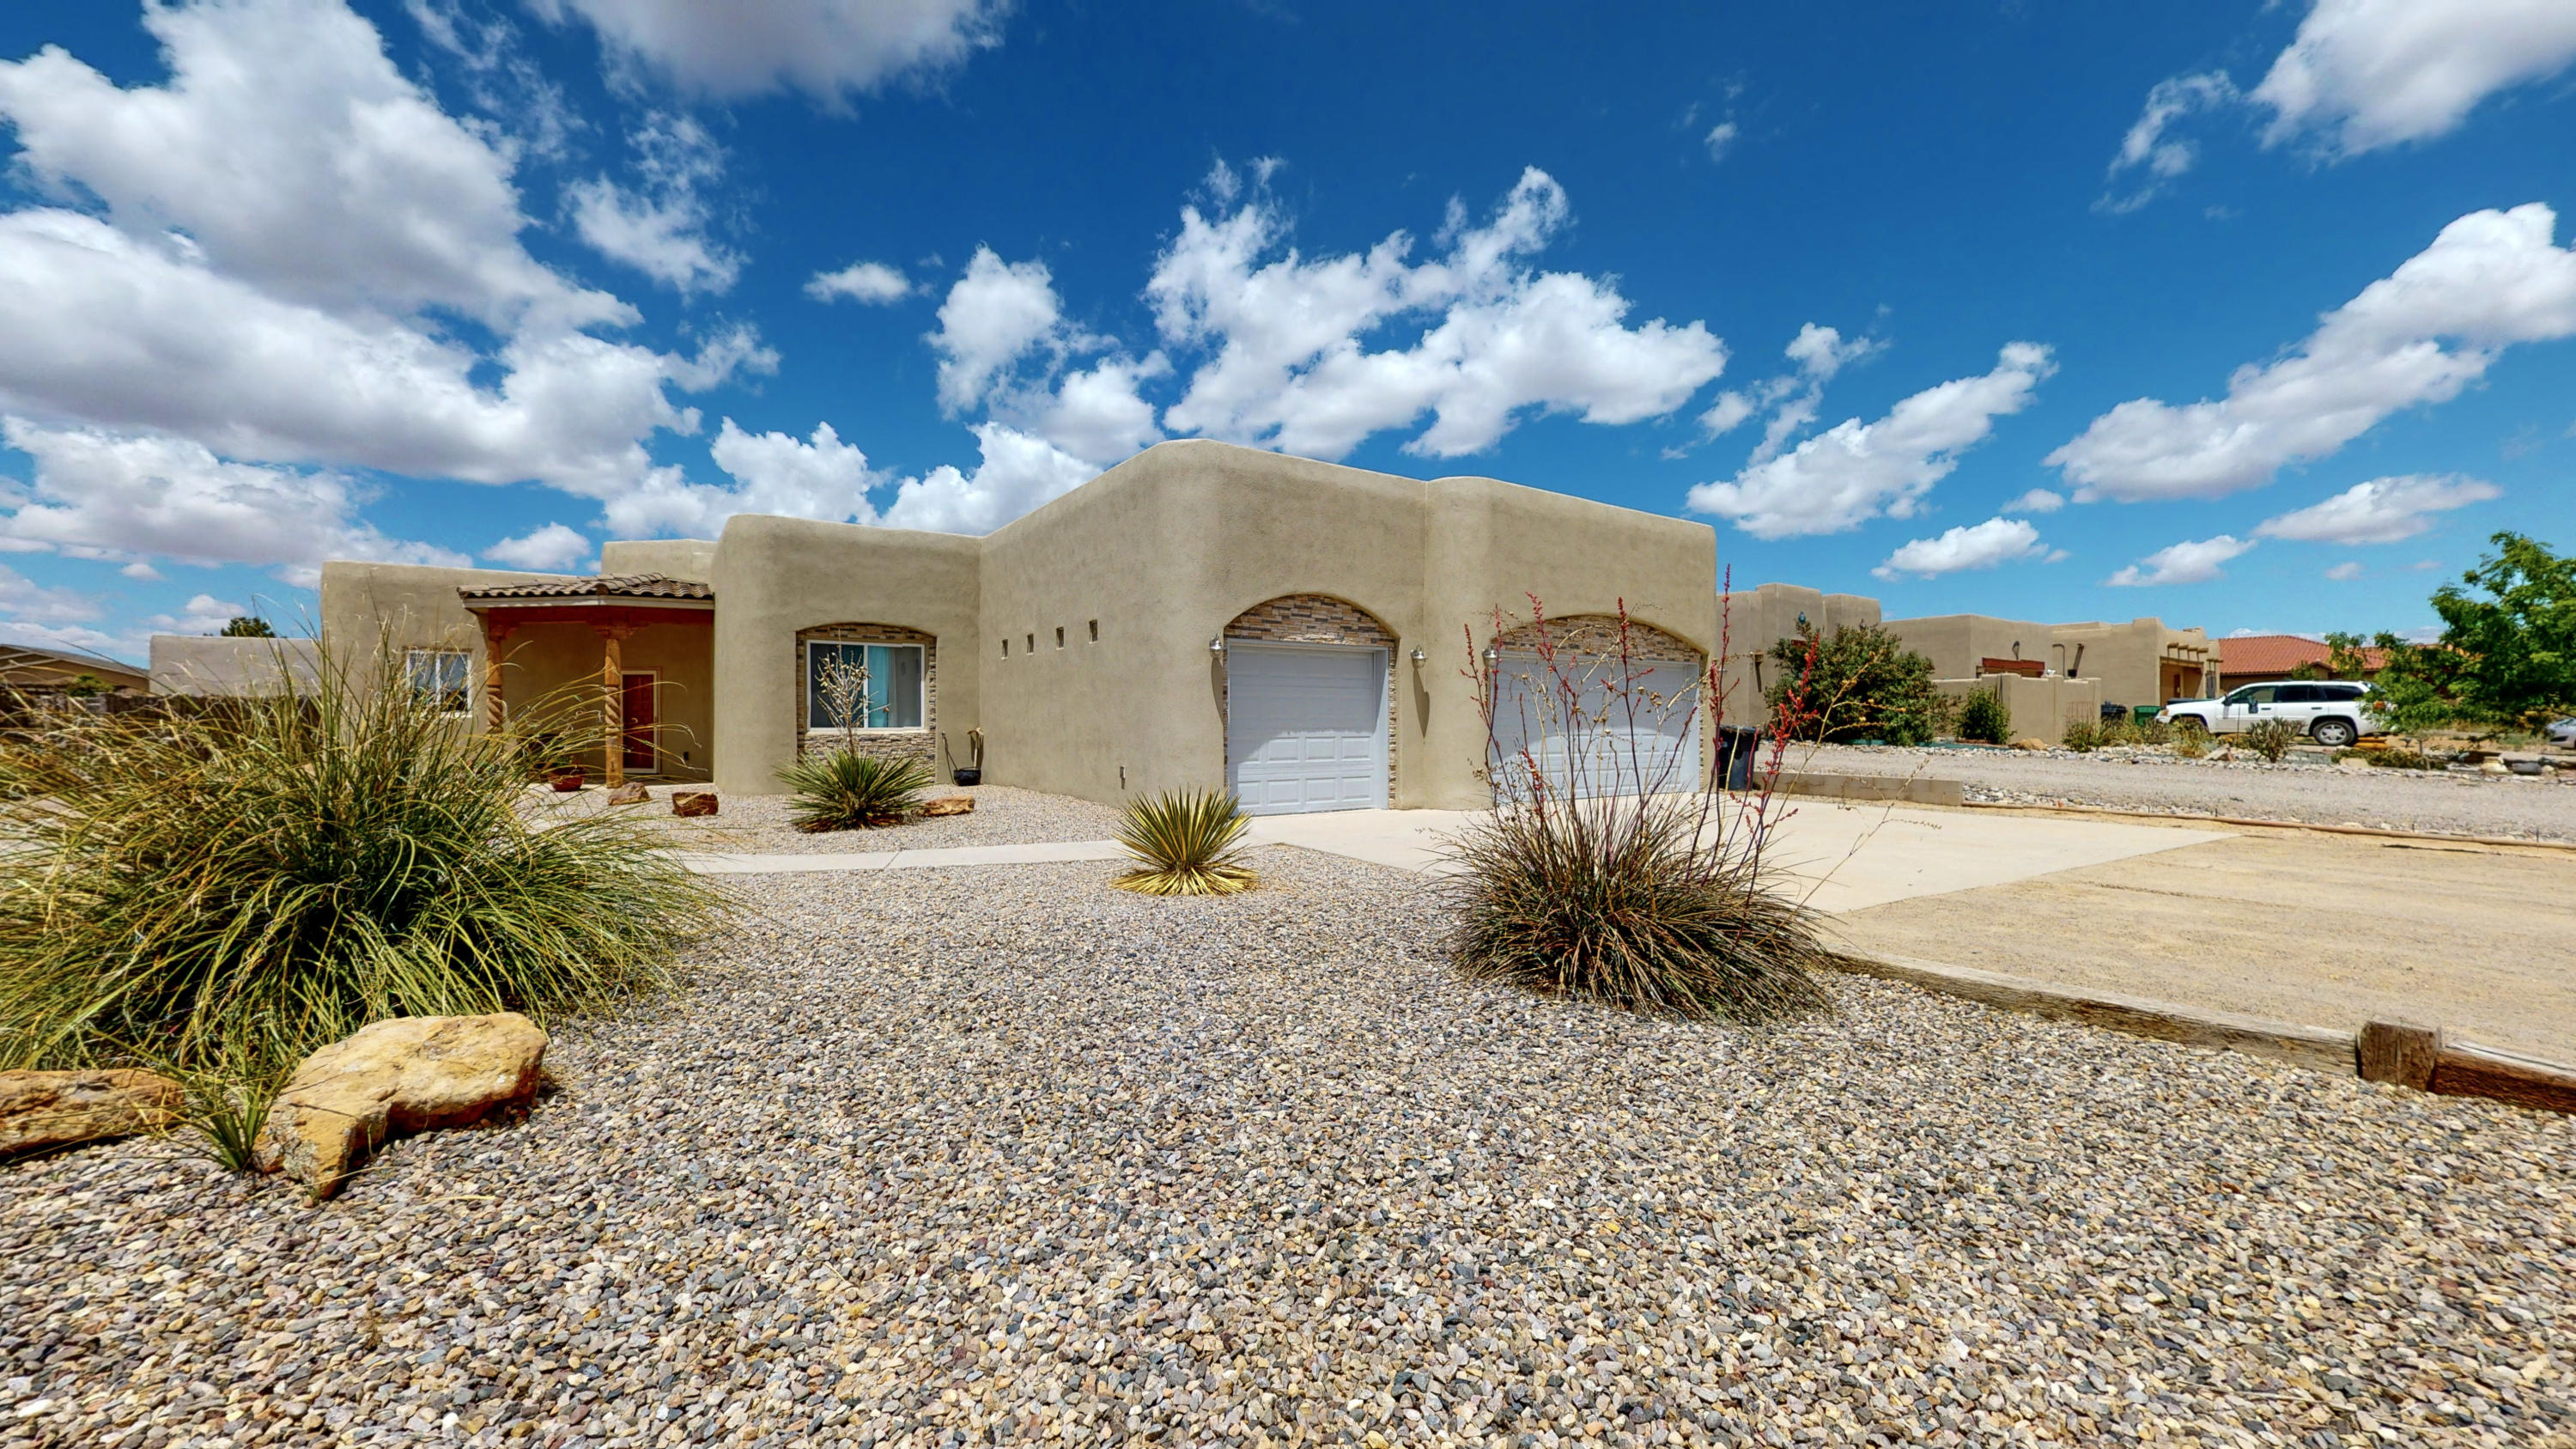 This beautiful  Pueblo Style 1/2 acre property is available for its new owners! With 4 bedrooms, 2.5 bathrooms and 3 car garage, your family will have all the space you need!  Make an appointment to view today!